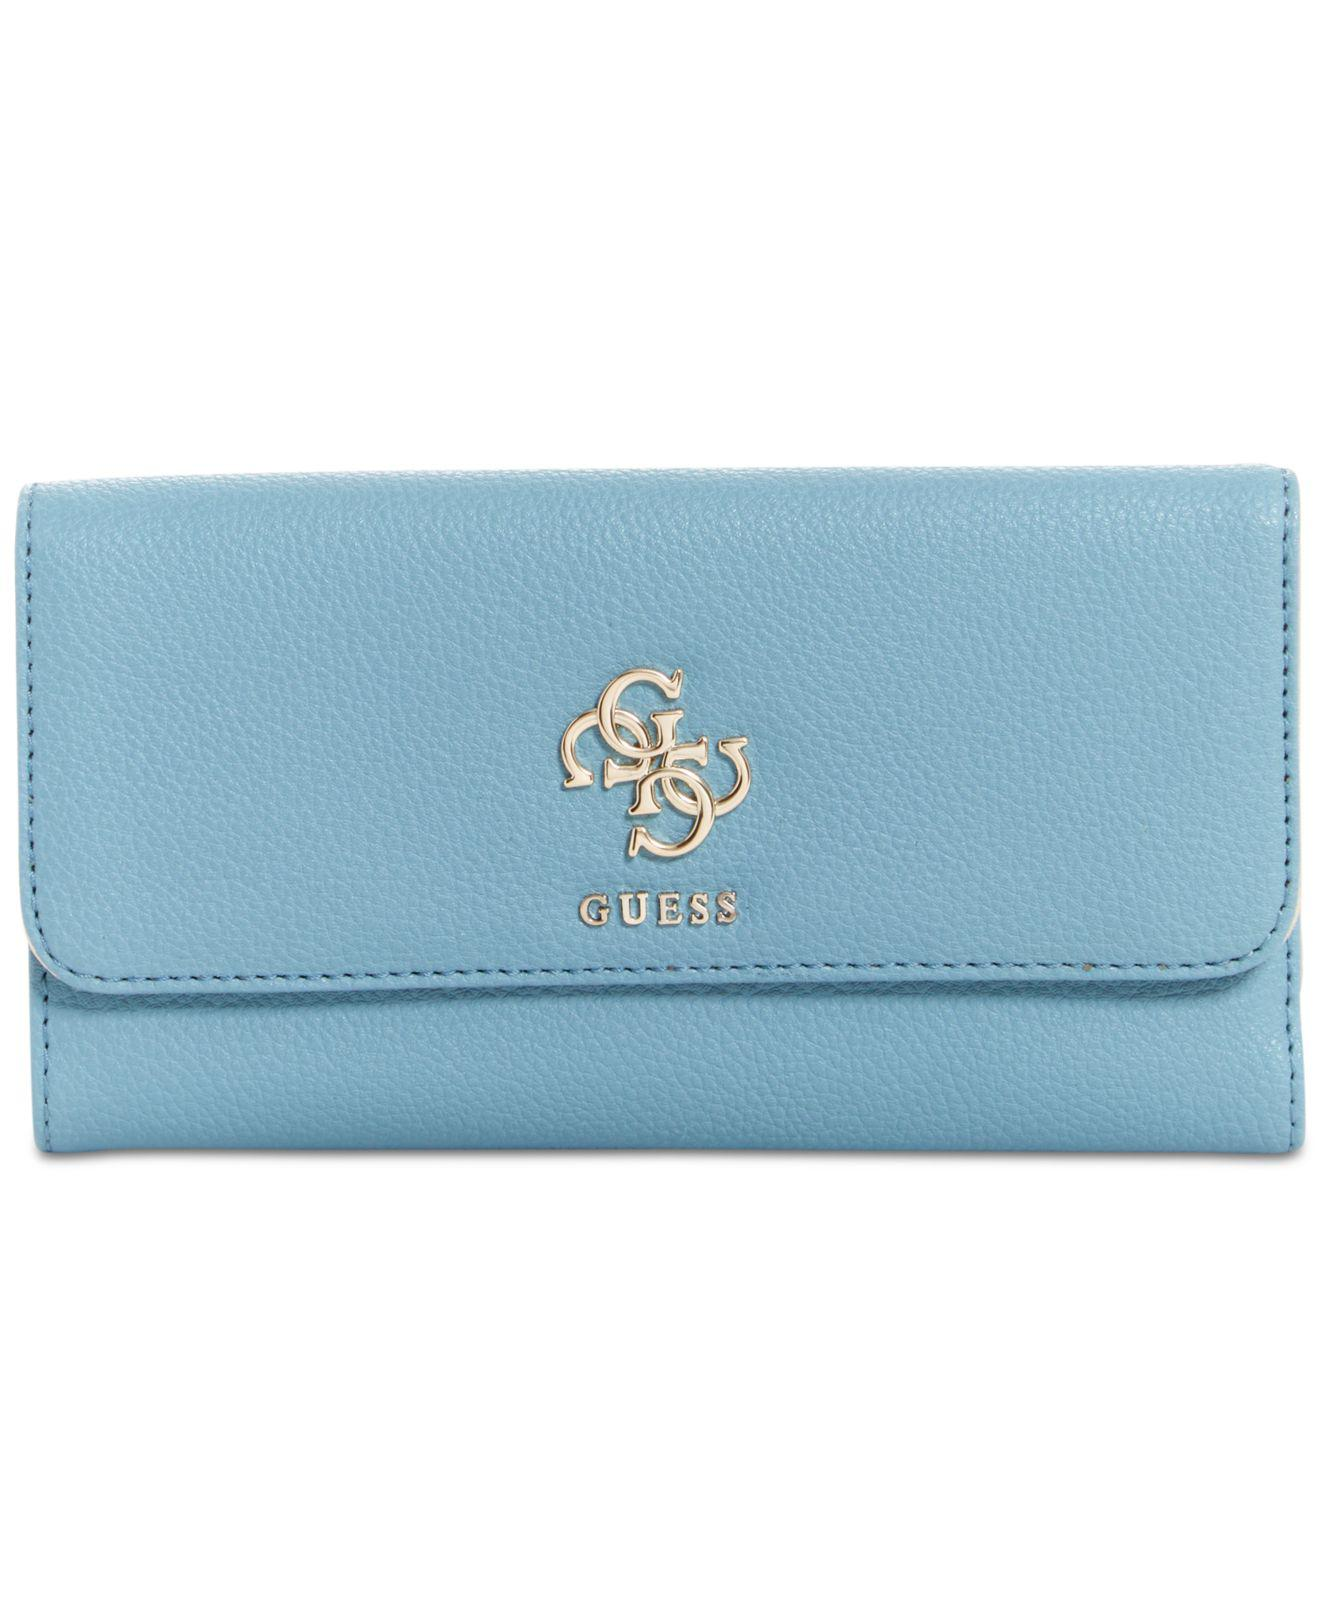 4db40a56f943 Guess Blue Wallet - Best Photo Wallet Justiceforkenny.Org